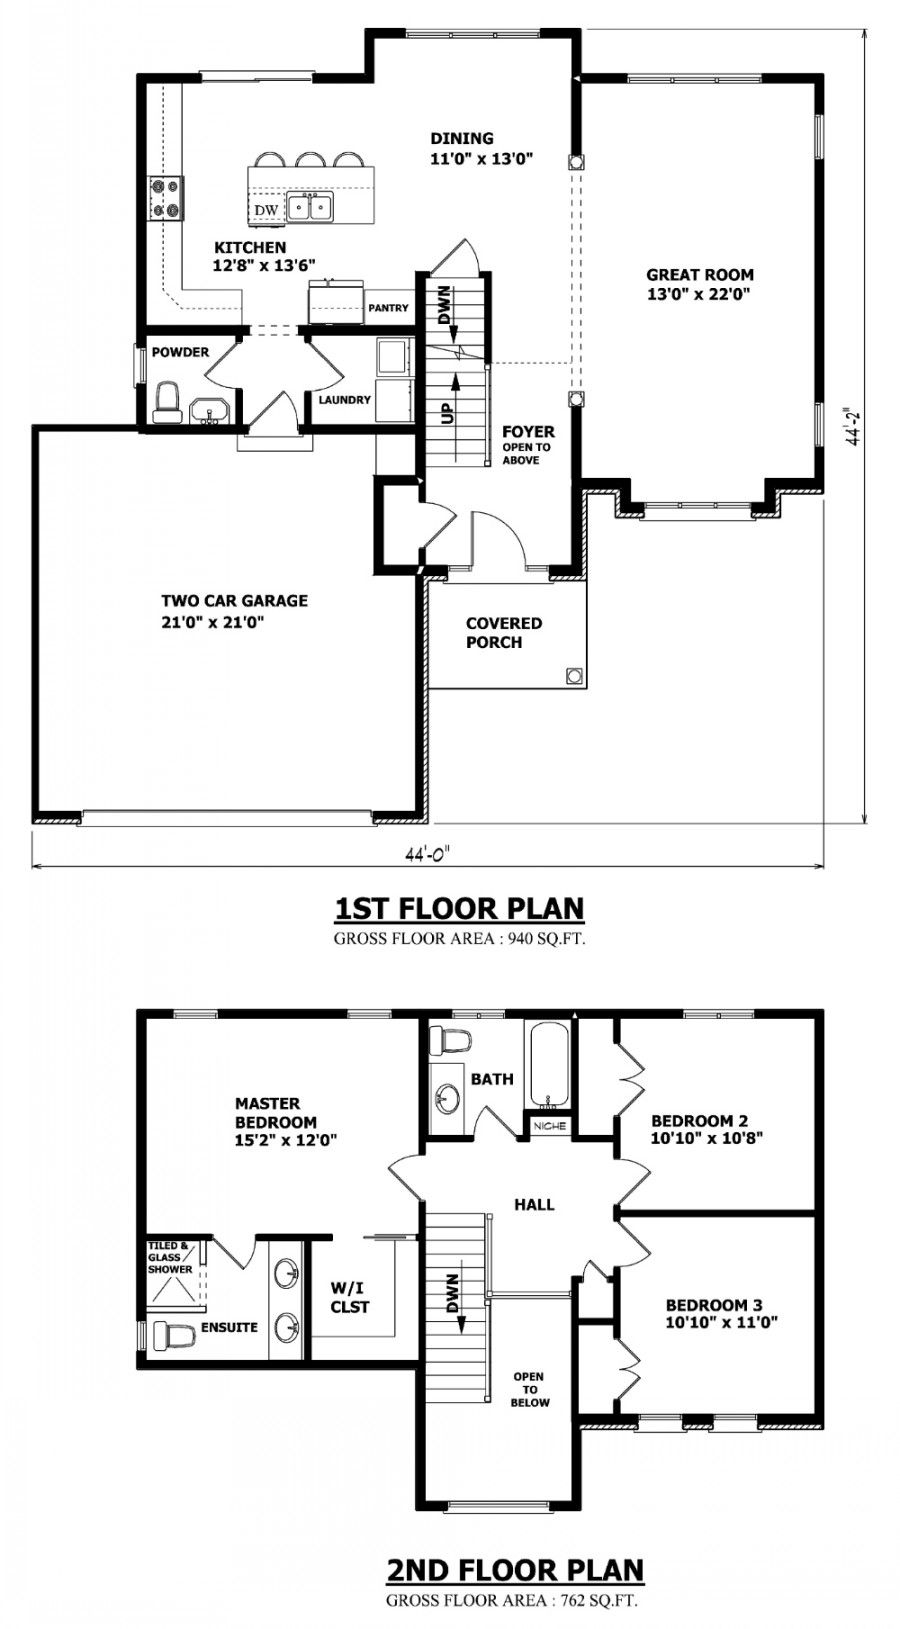 Strange 17 Best Images About 2 Story Plans On Pinterest House Plans Largest Home Design Picture Inspirations Pitcheantrous